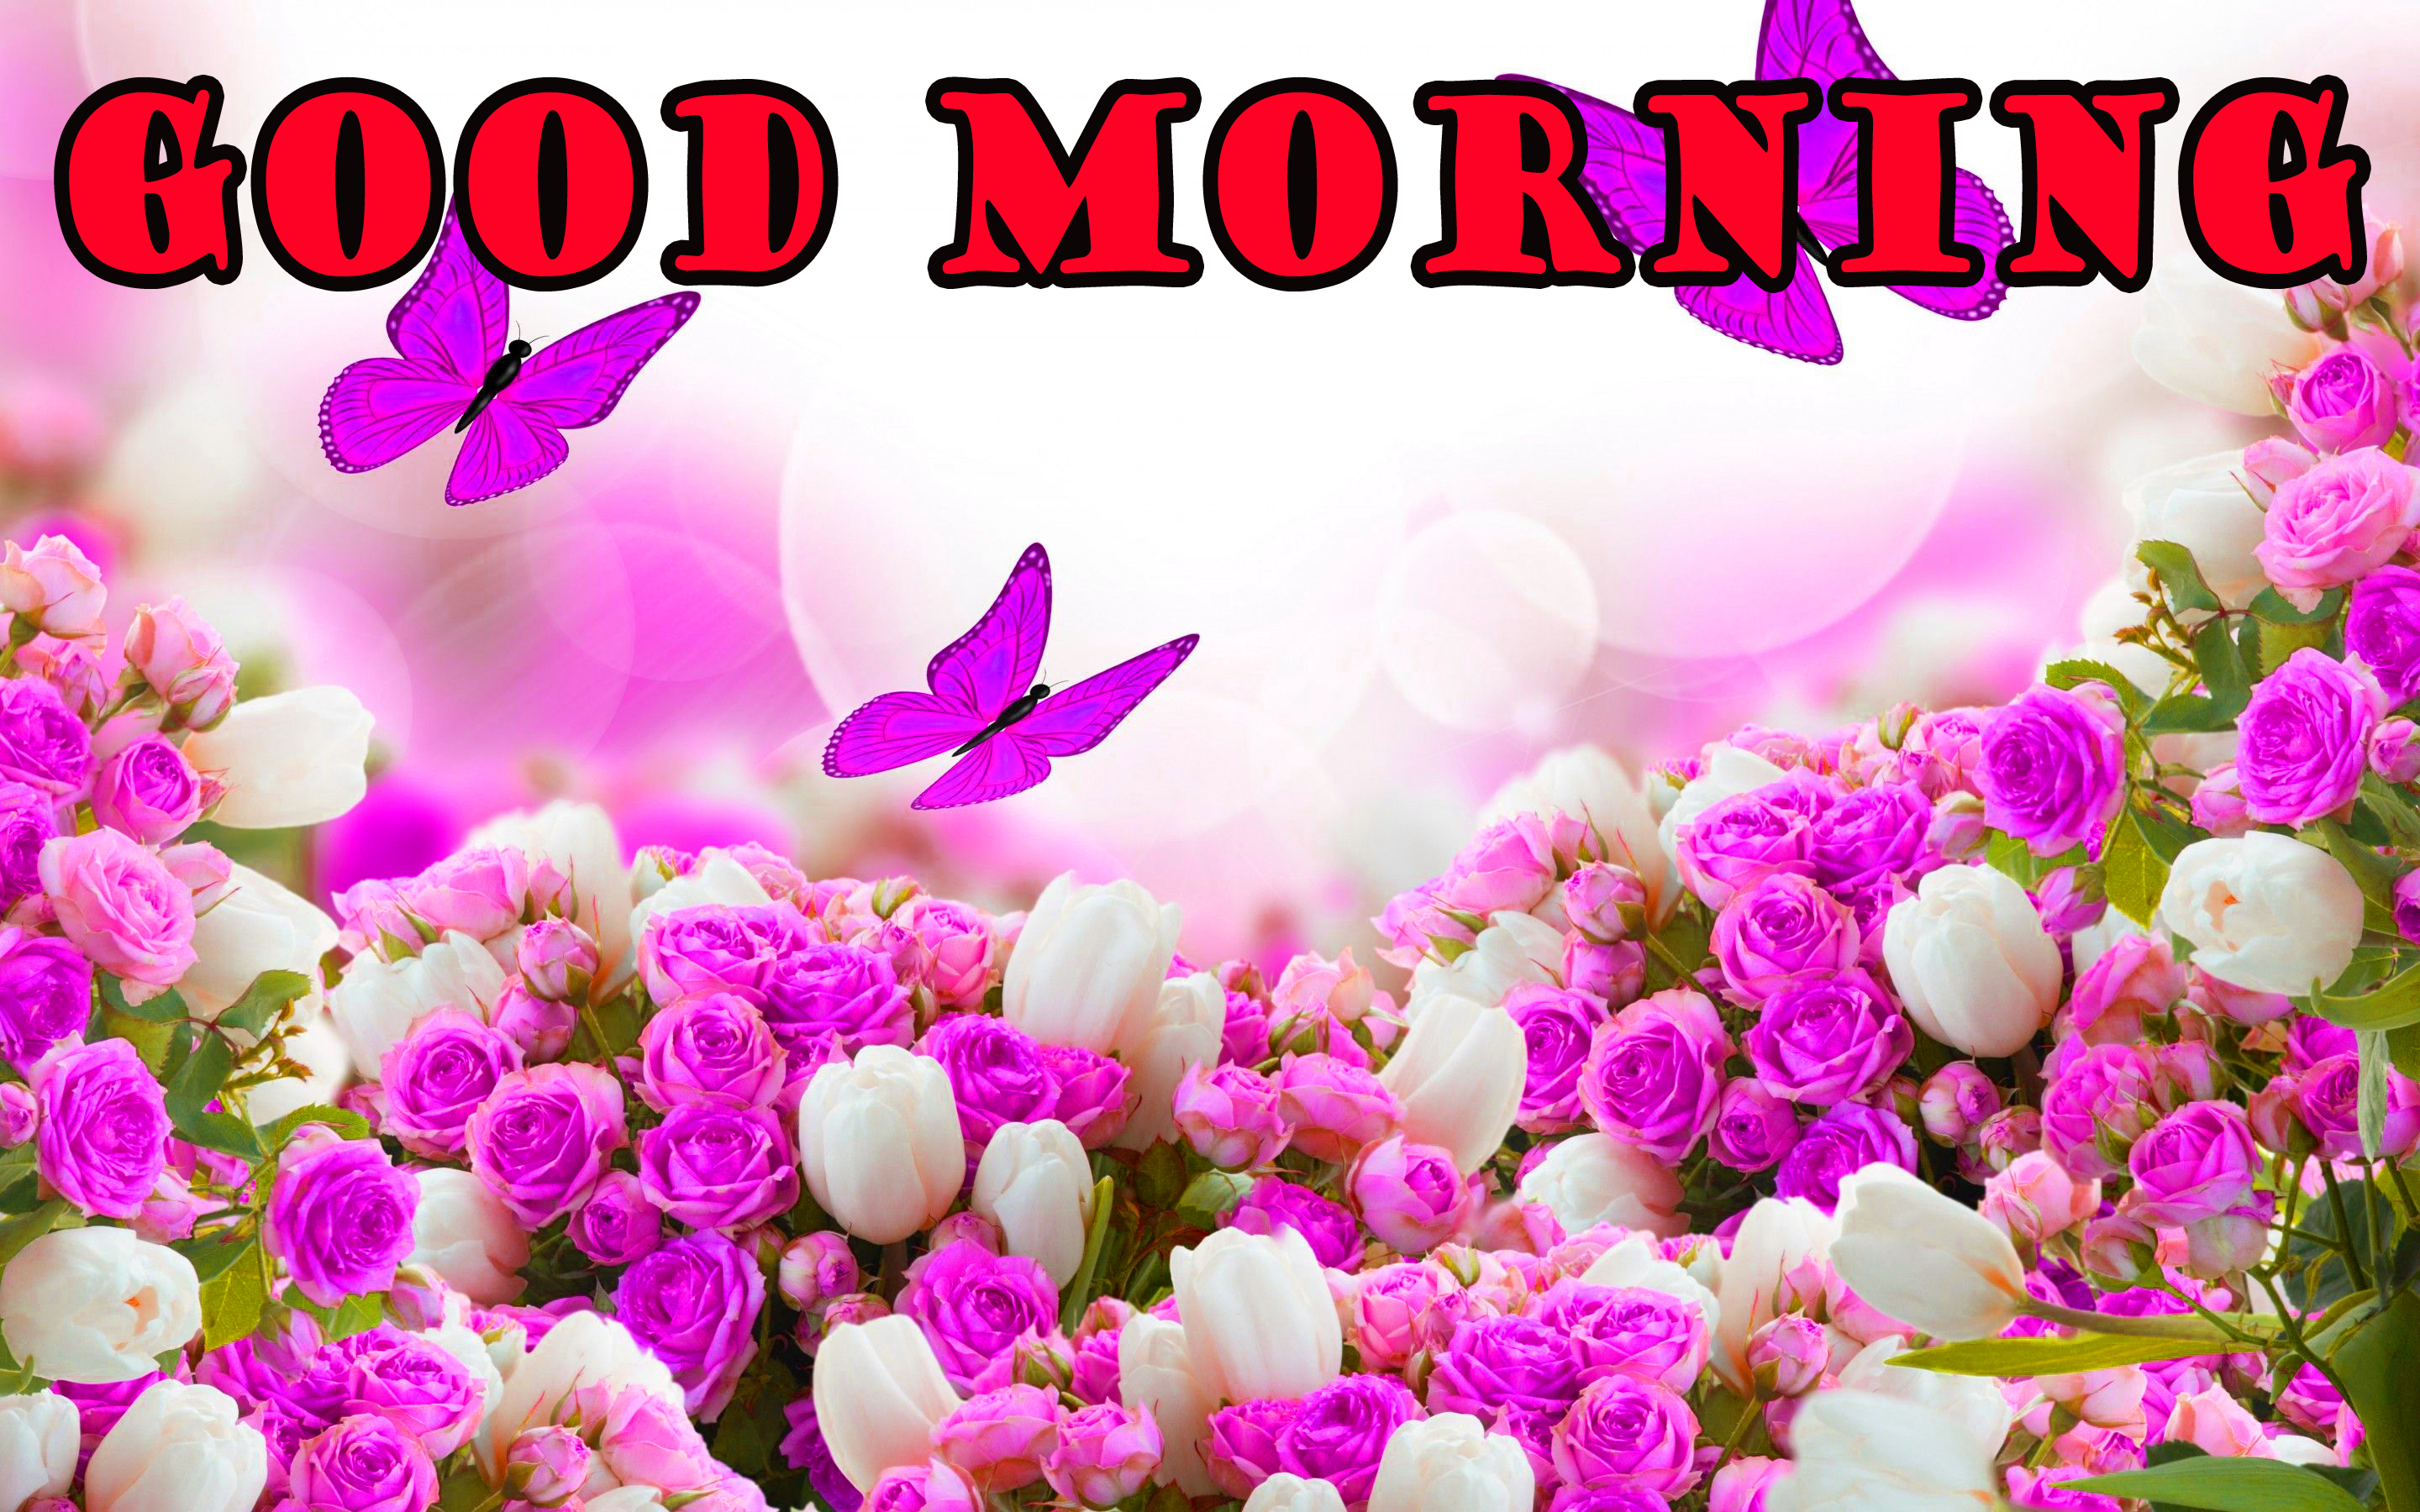 गुड मॉर्निंग New Wonderful Good Morning Wallpaper Pictures Photo Free Download